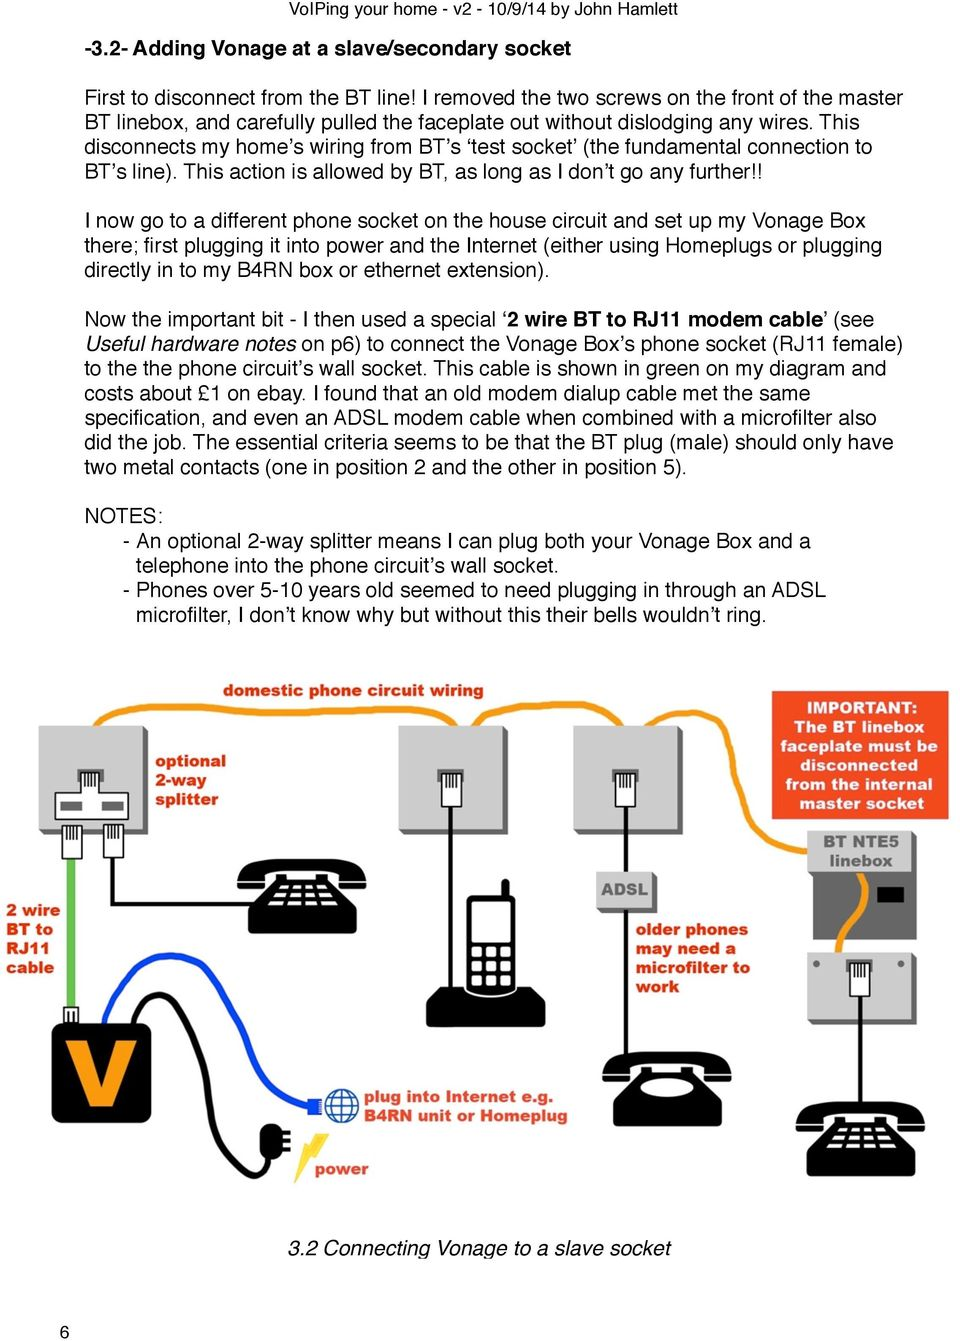 An Unofficial Guide To Setting Up Vonage Voip On B4rn And Notes Socket Circuit Diagram Bt Phone Wiring Master This Disconnects My Homes From Bts Test The Fundamental Connection Line